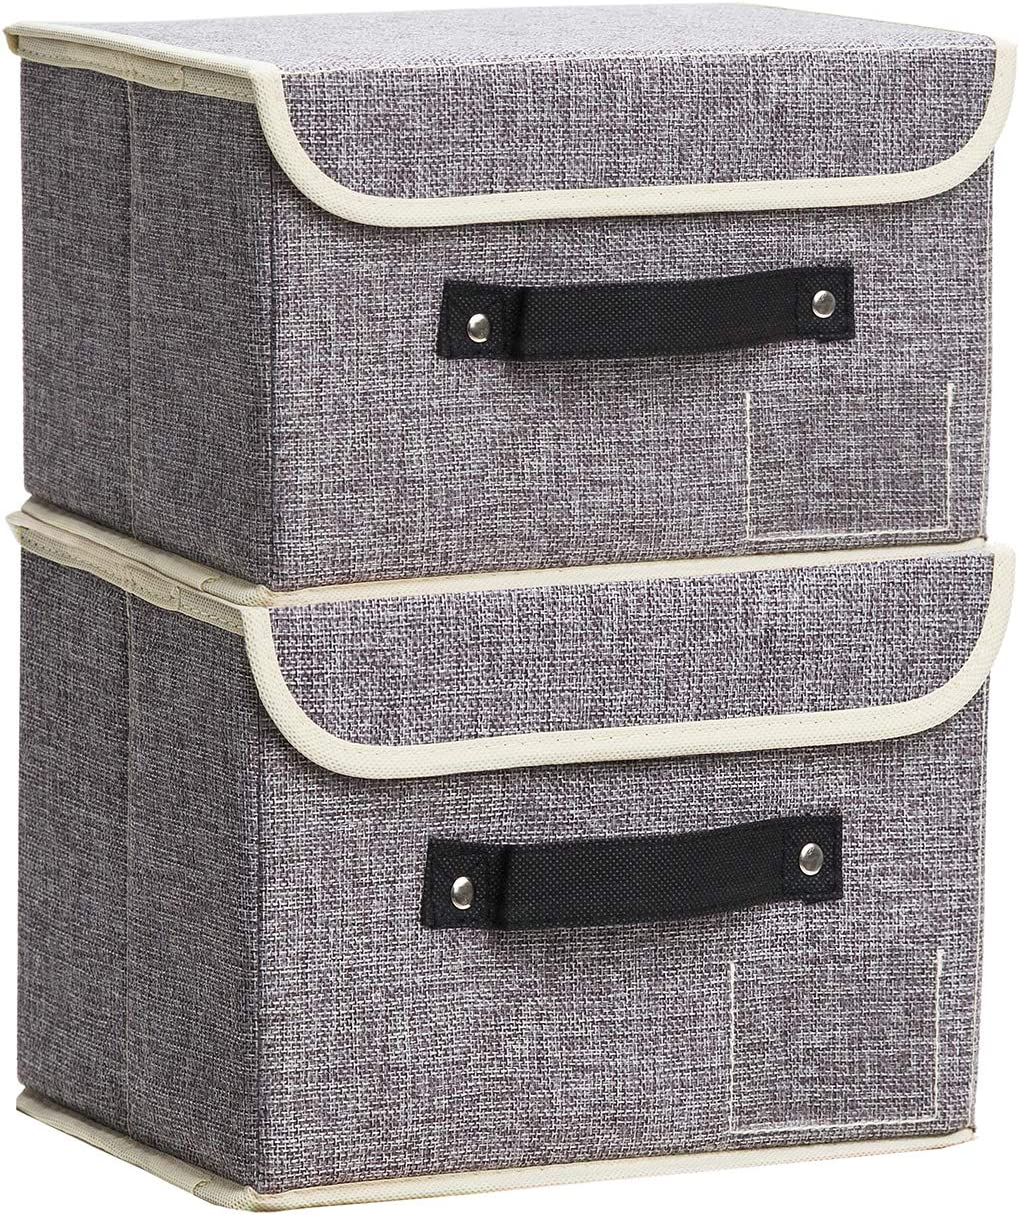 Small Storage Bins with Lids 2 Pack Linen Collapsible Cube Storage Basket with Handle, Jane's Home Foldable Fabric Storage Box with lids Organizer for Toys, Clothes Closet, Ornament Grey